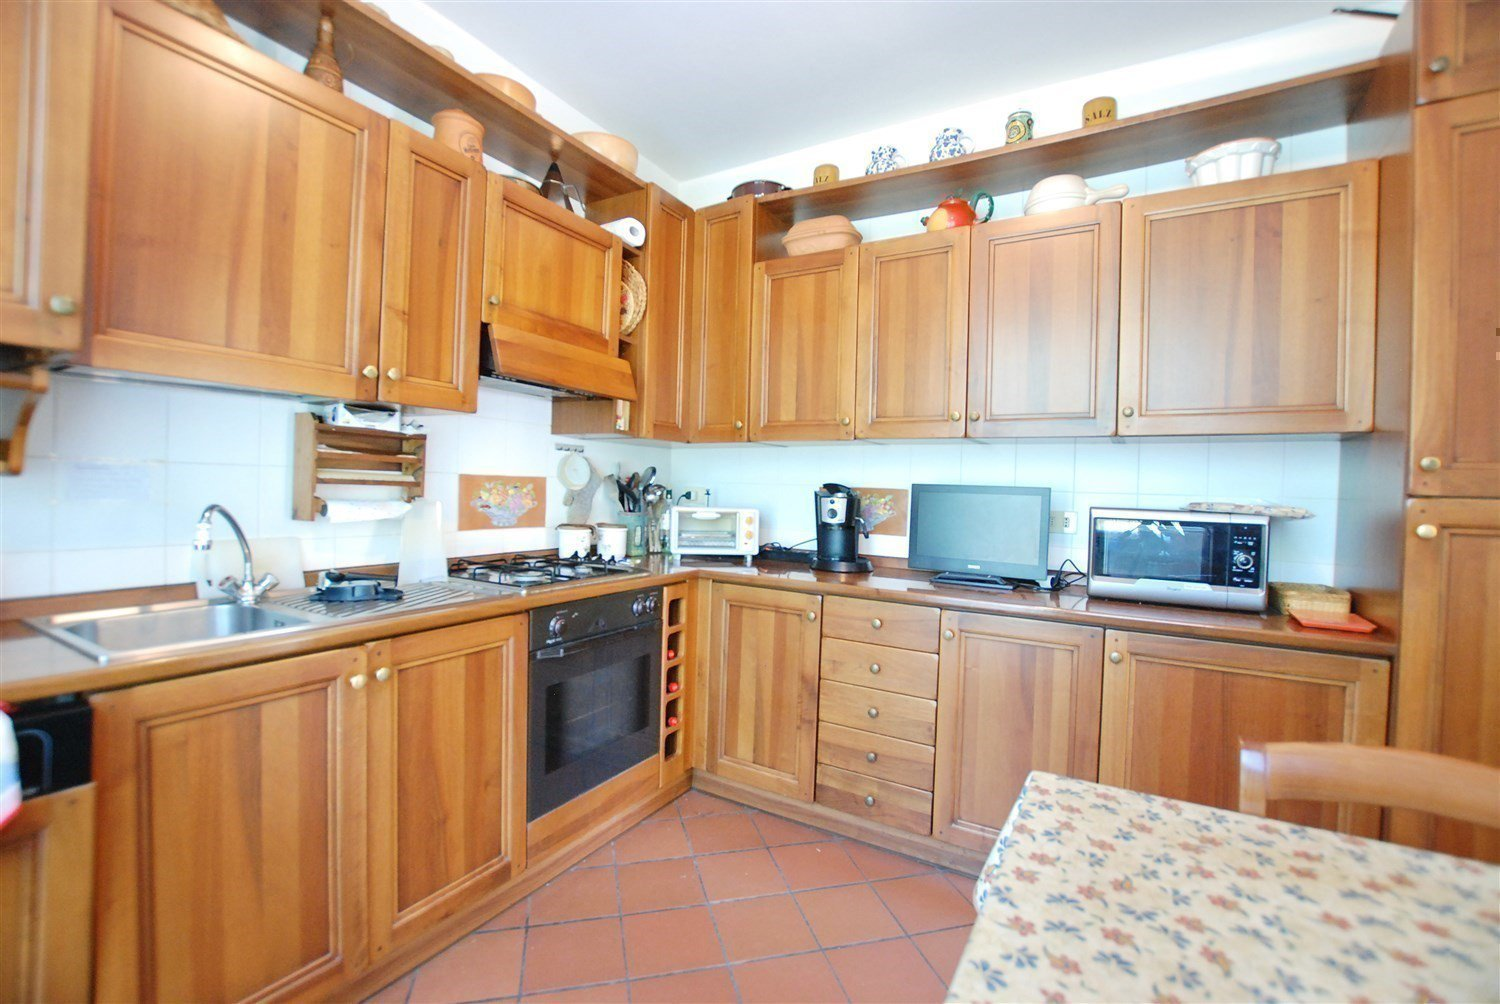 Terraced house for sale in Gignese, based in Vezzo - large kitchen